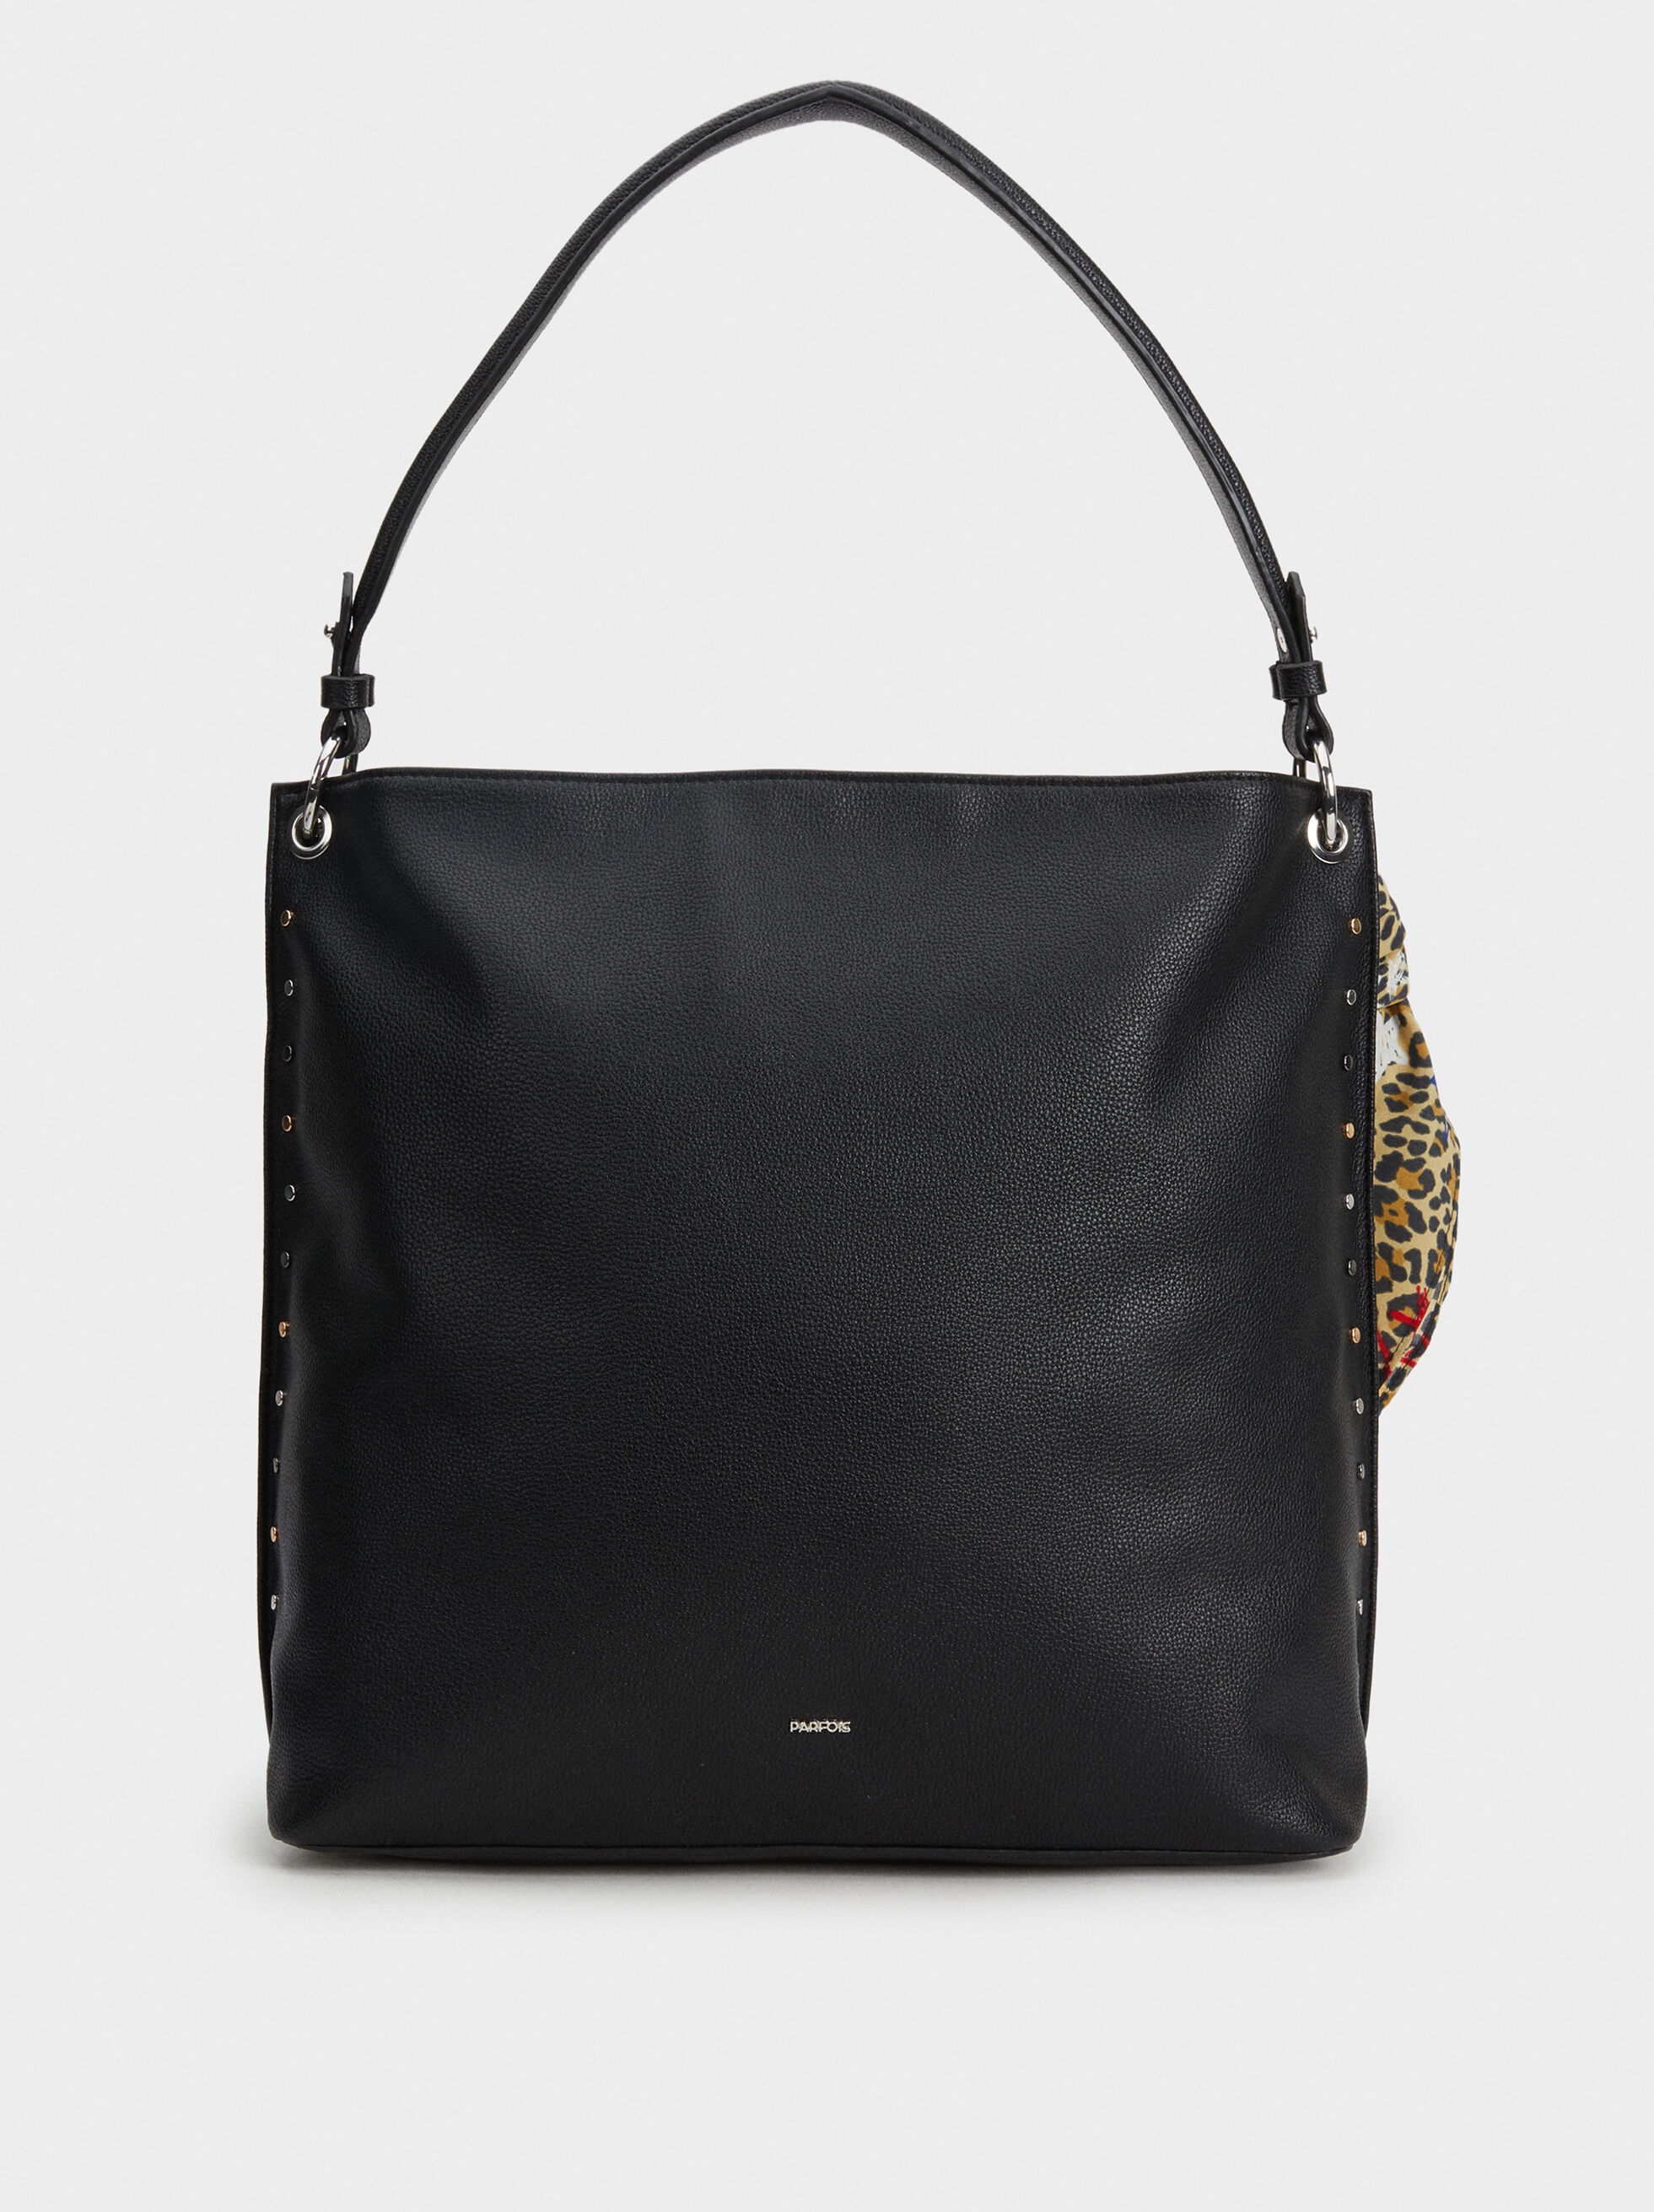 Thunder Handbag, Black, hi-res